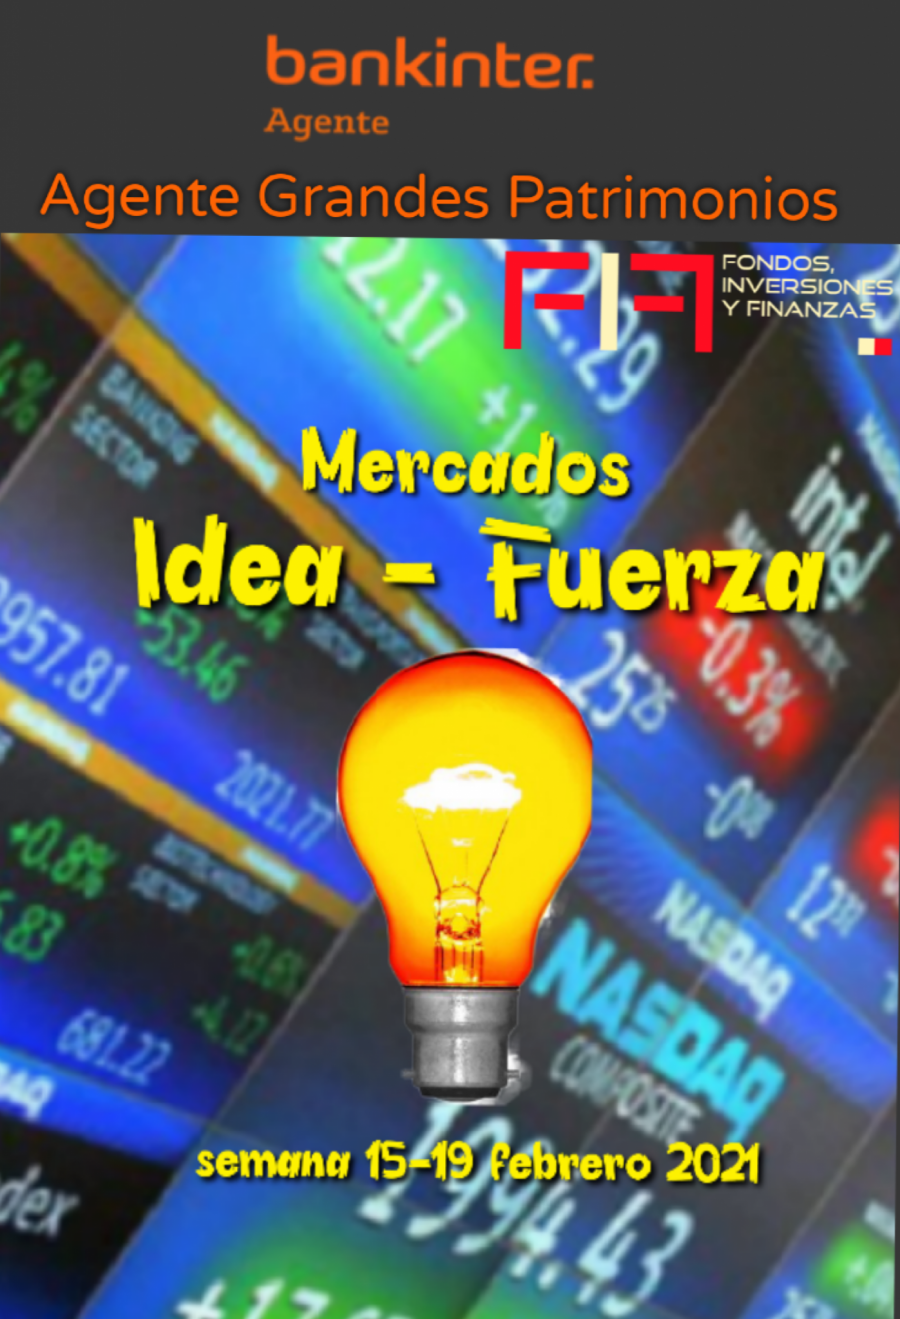 FIFNEWS 15 FEB 2021: Mercados Idea-Fuerza